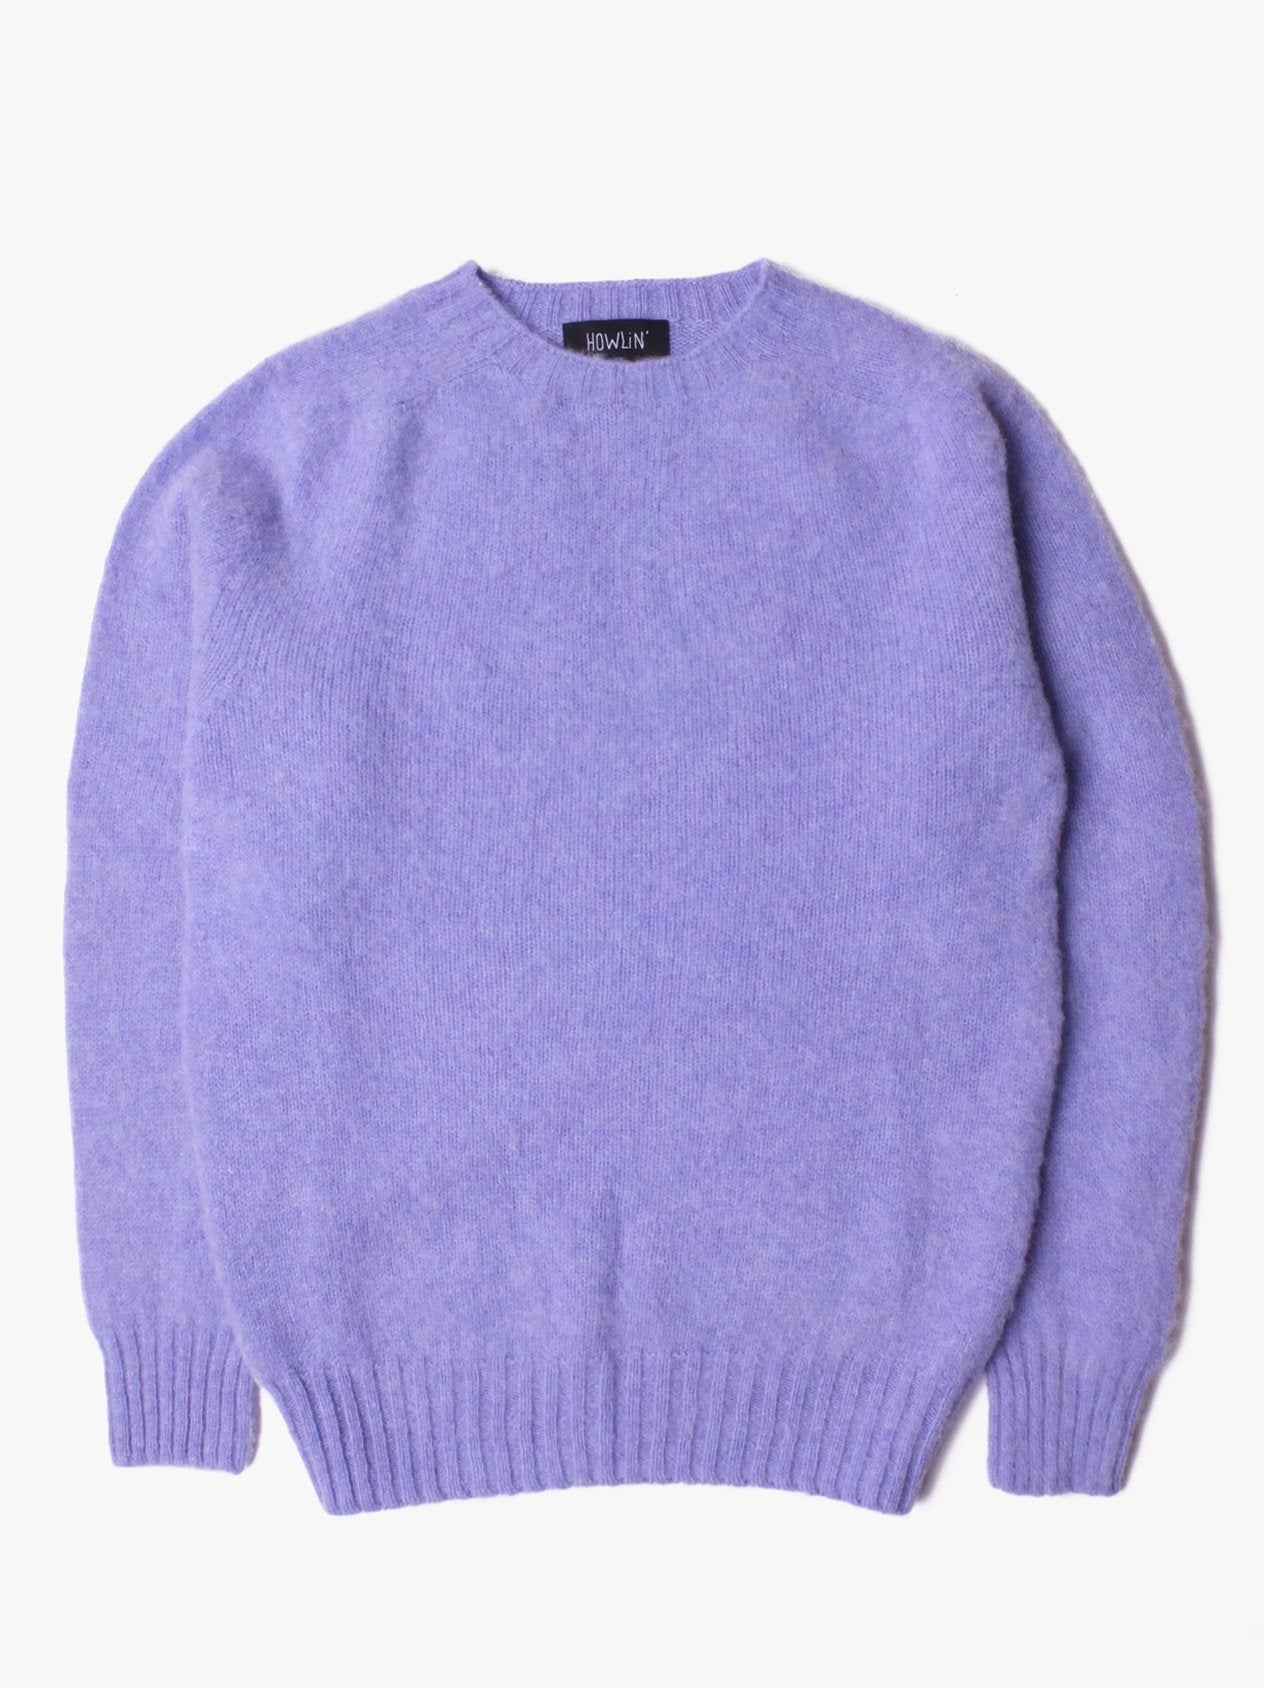 Birth of the Cool Sweater in Wave by Howlin' Mohawk General Store